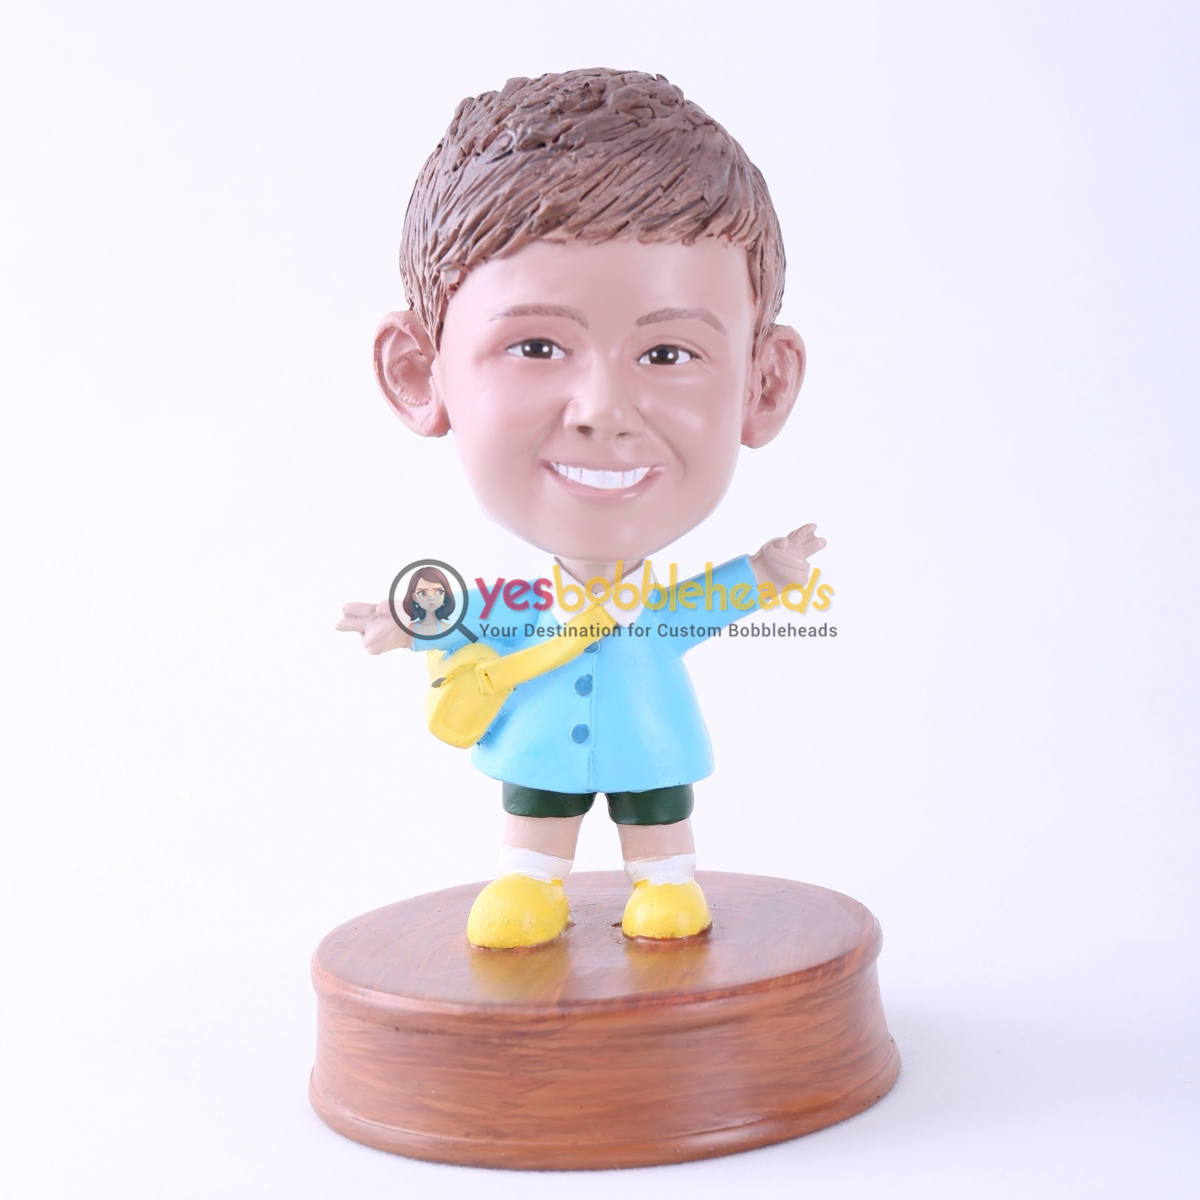 Picture of Custom Bobblehead Doll: Happy Little Boy